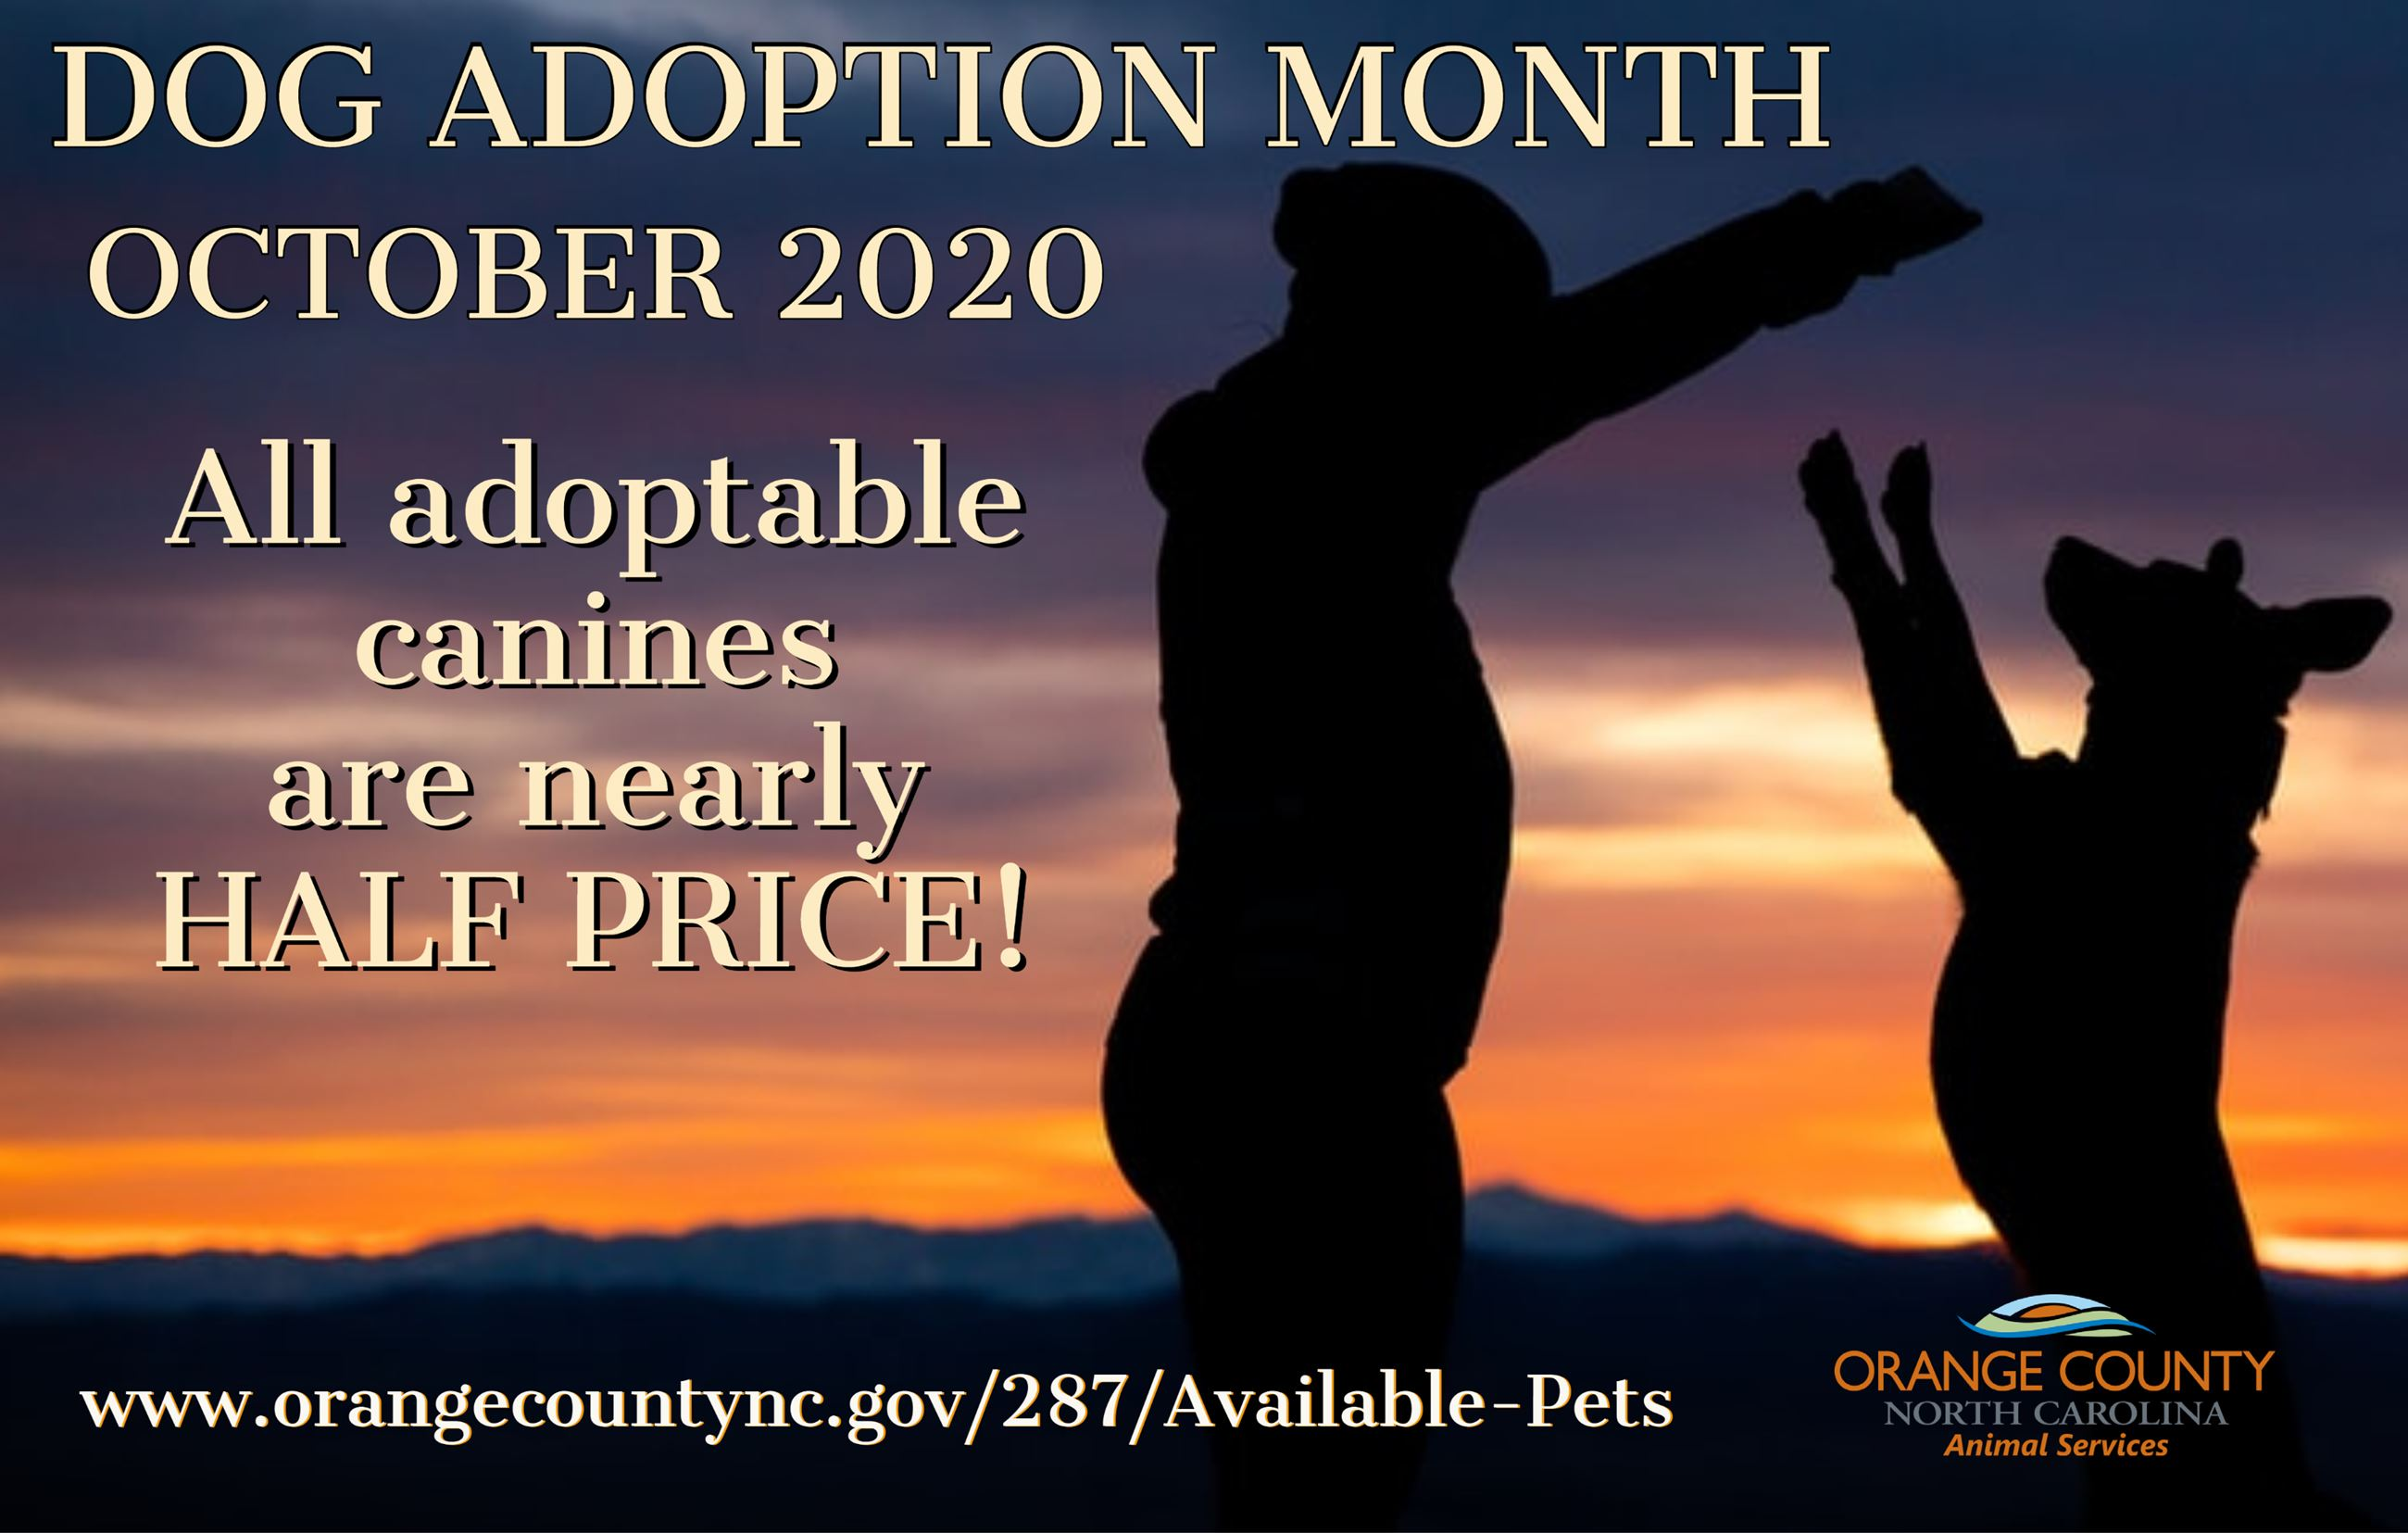 Dog Adoption Month 2020